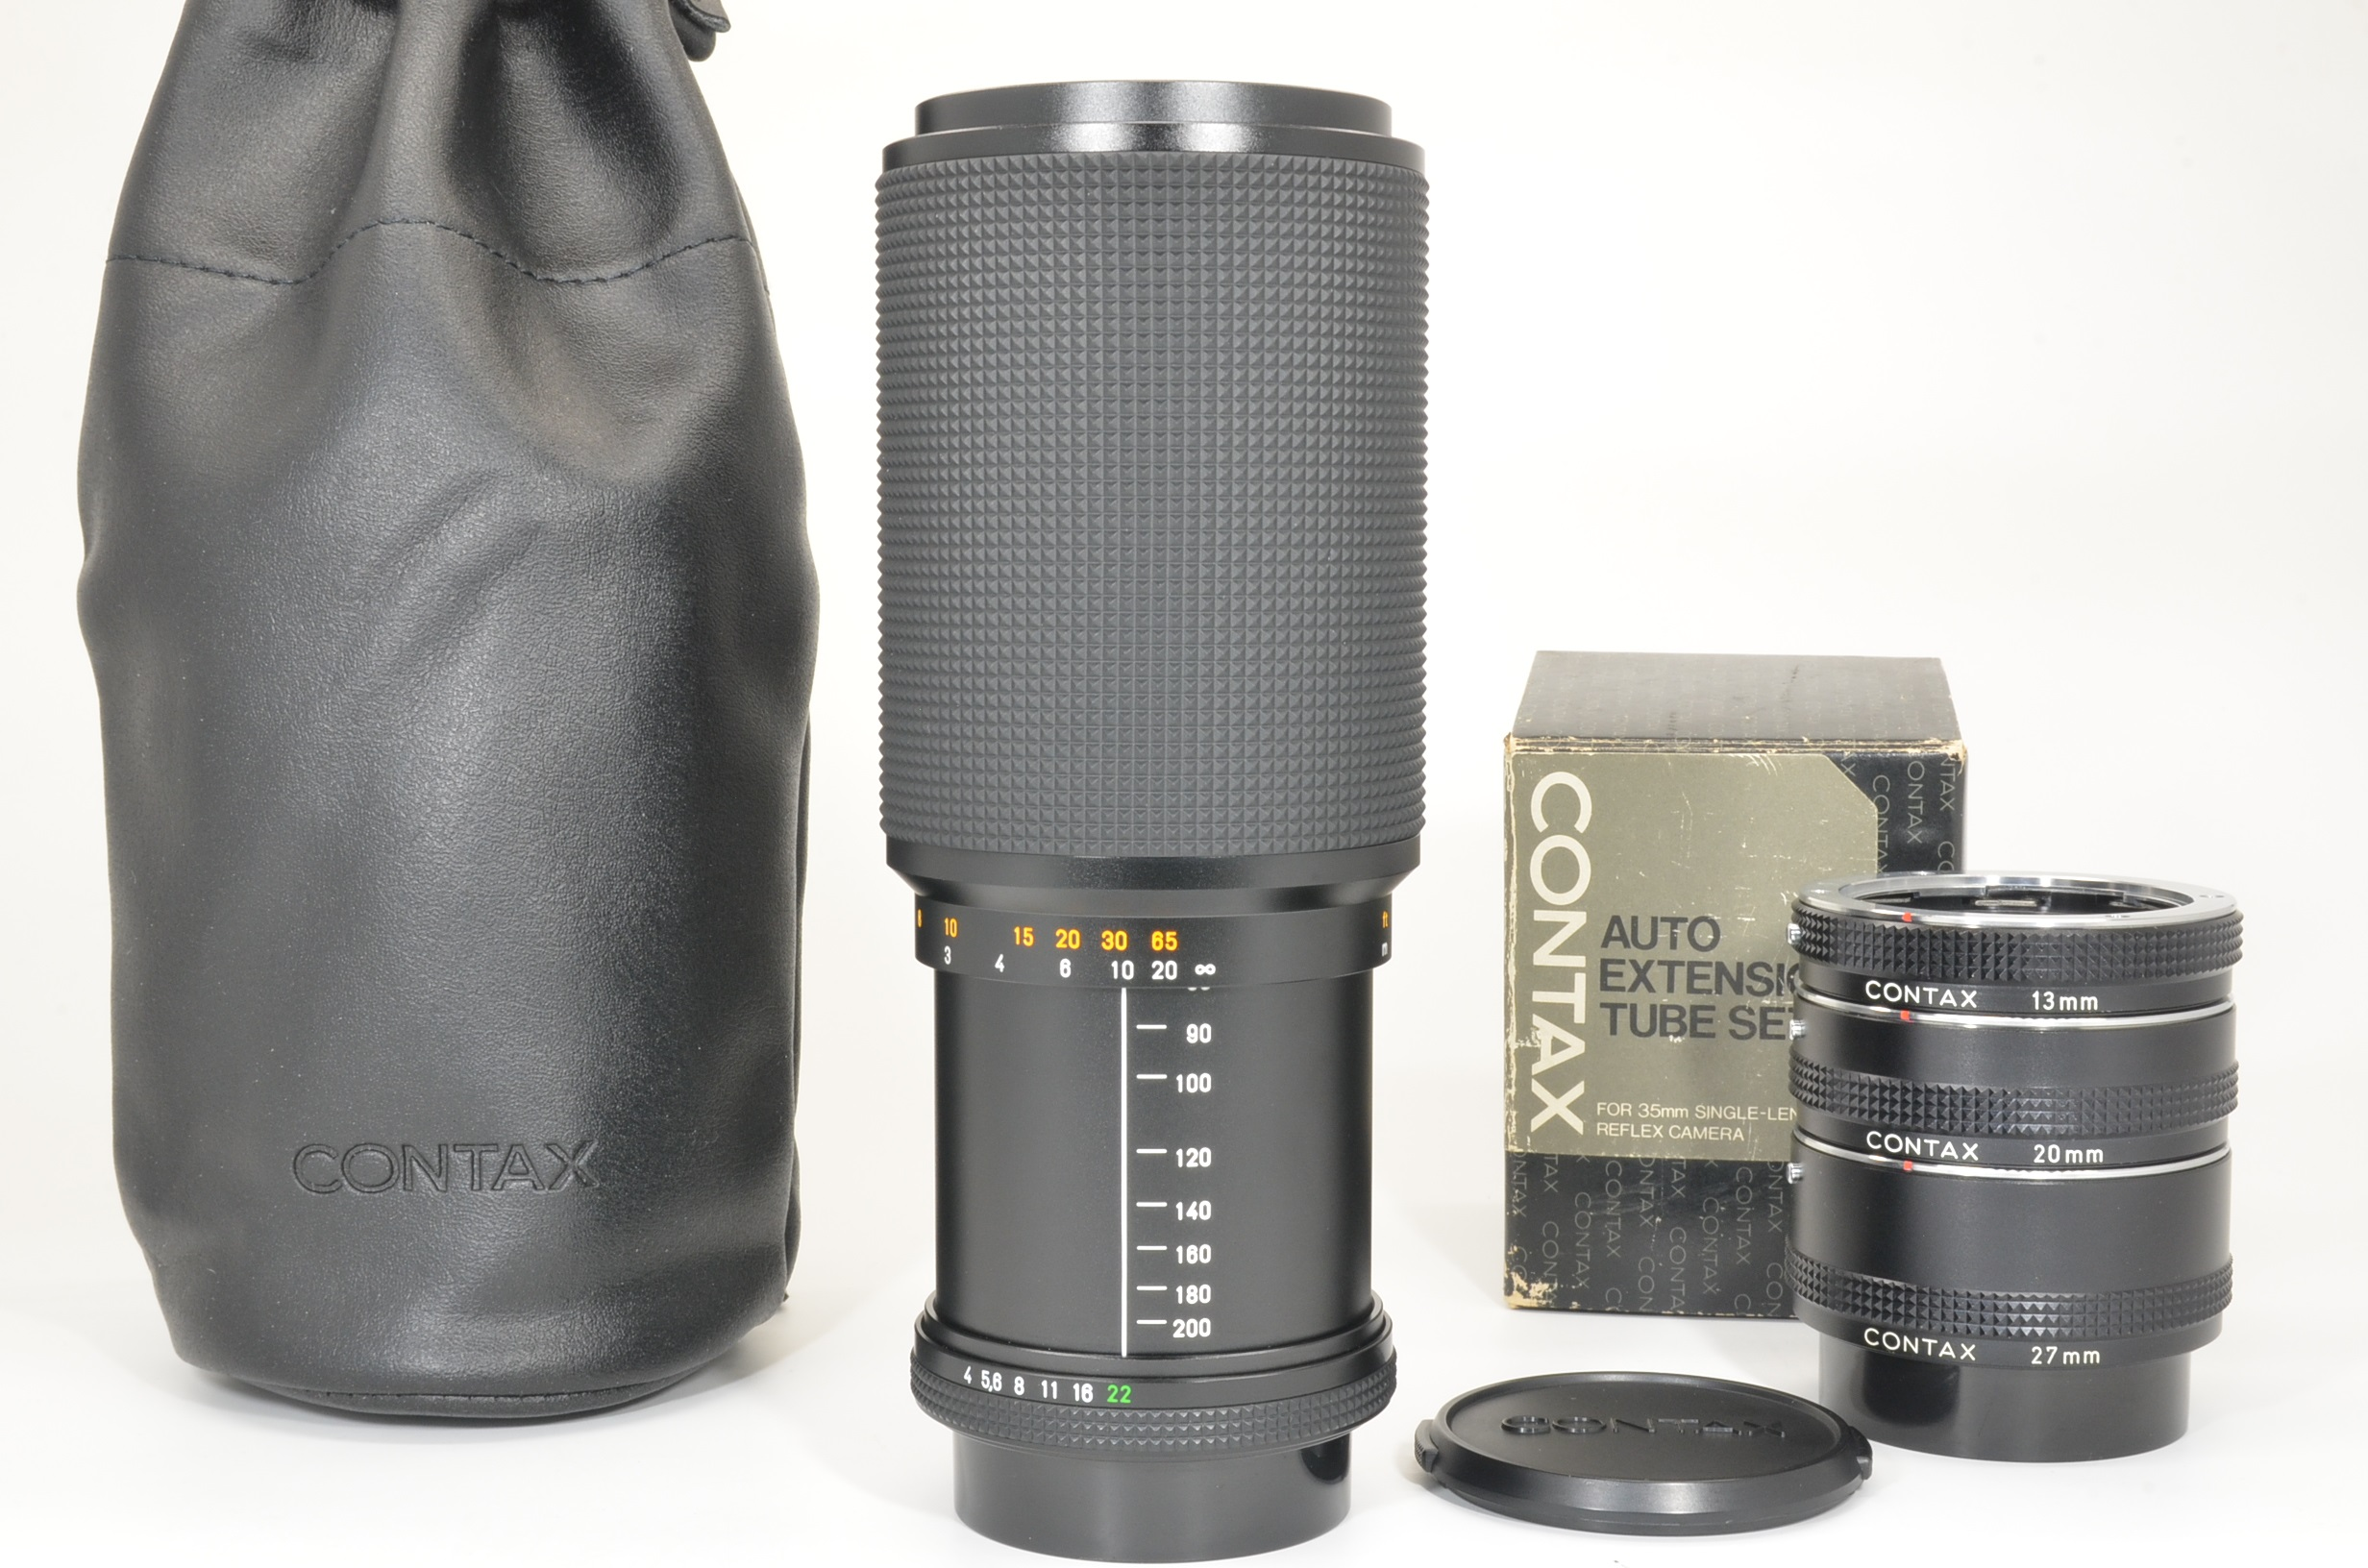 contax carl zeiss vario-sonnar 80-200mm f4 mmj, extension tube shooting tested